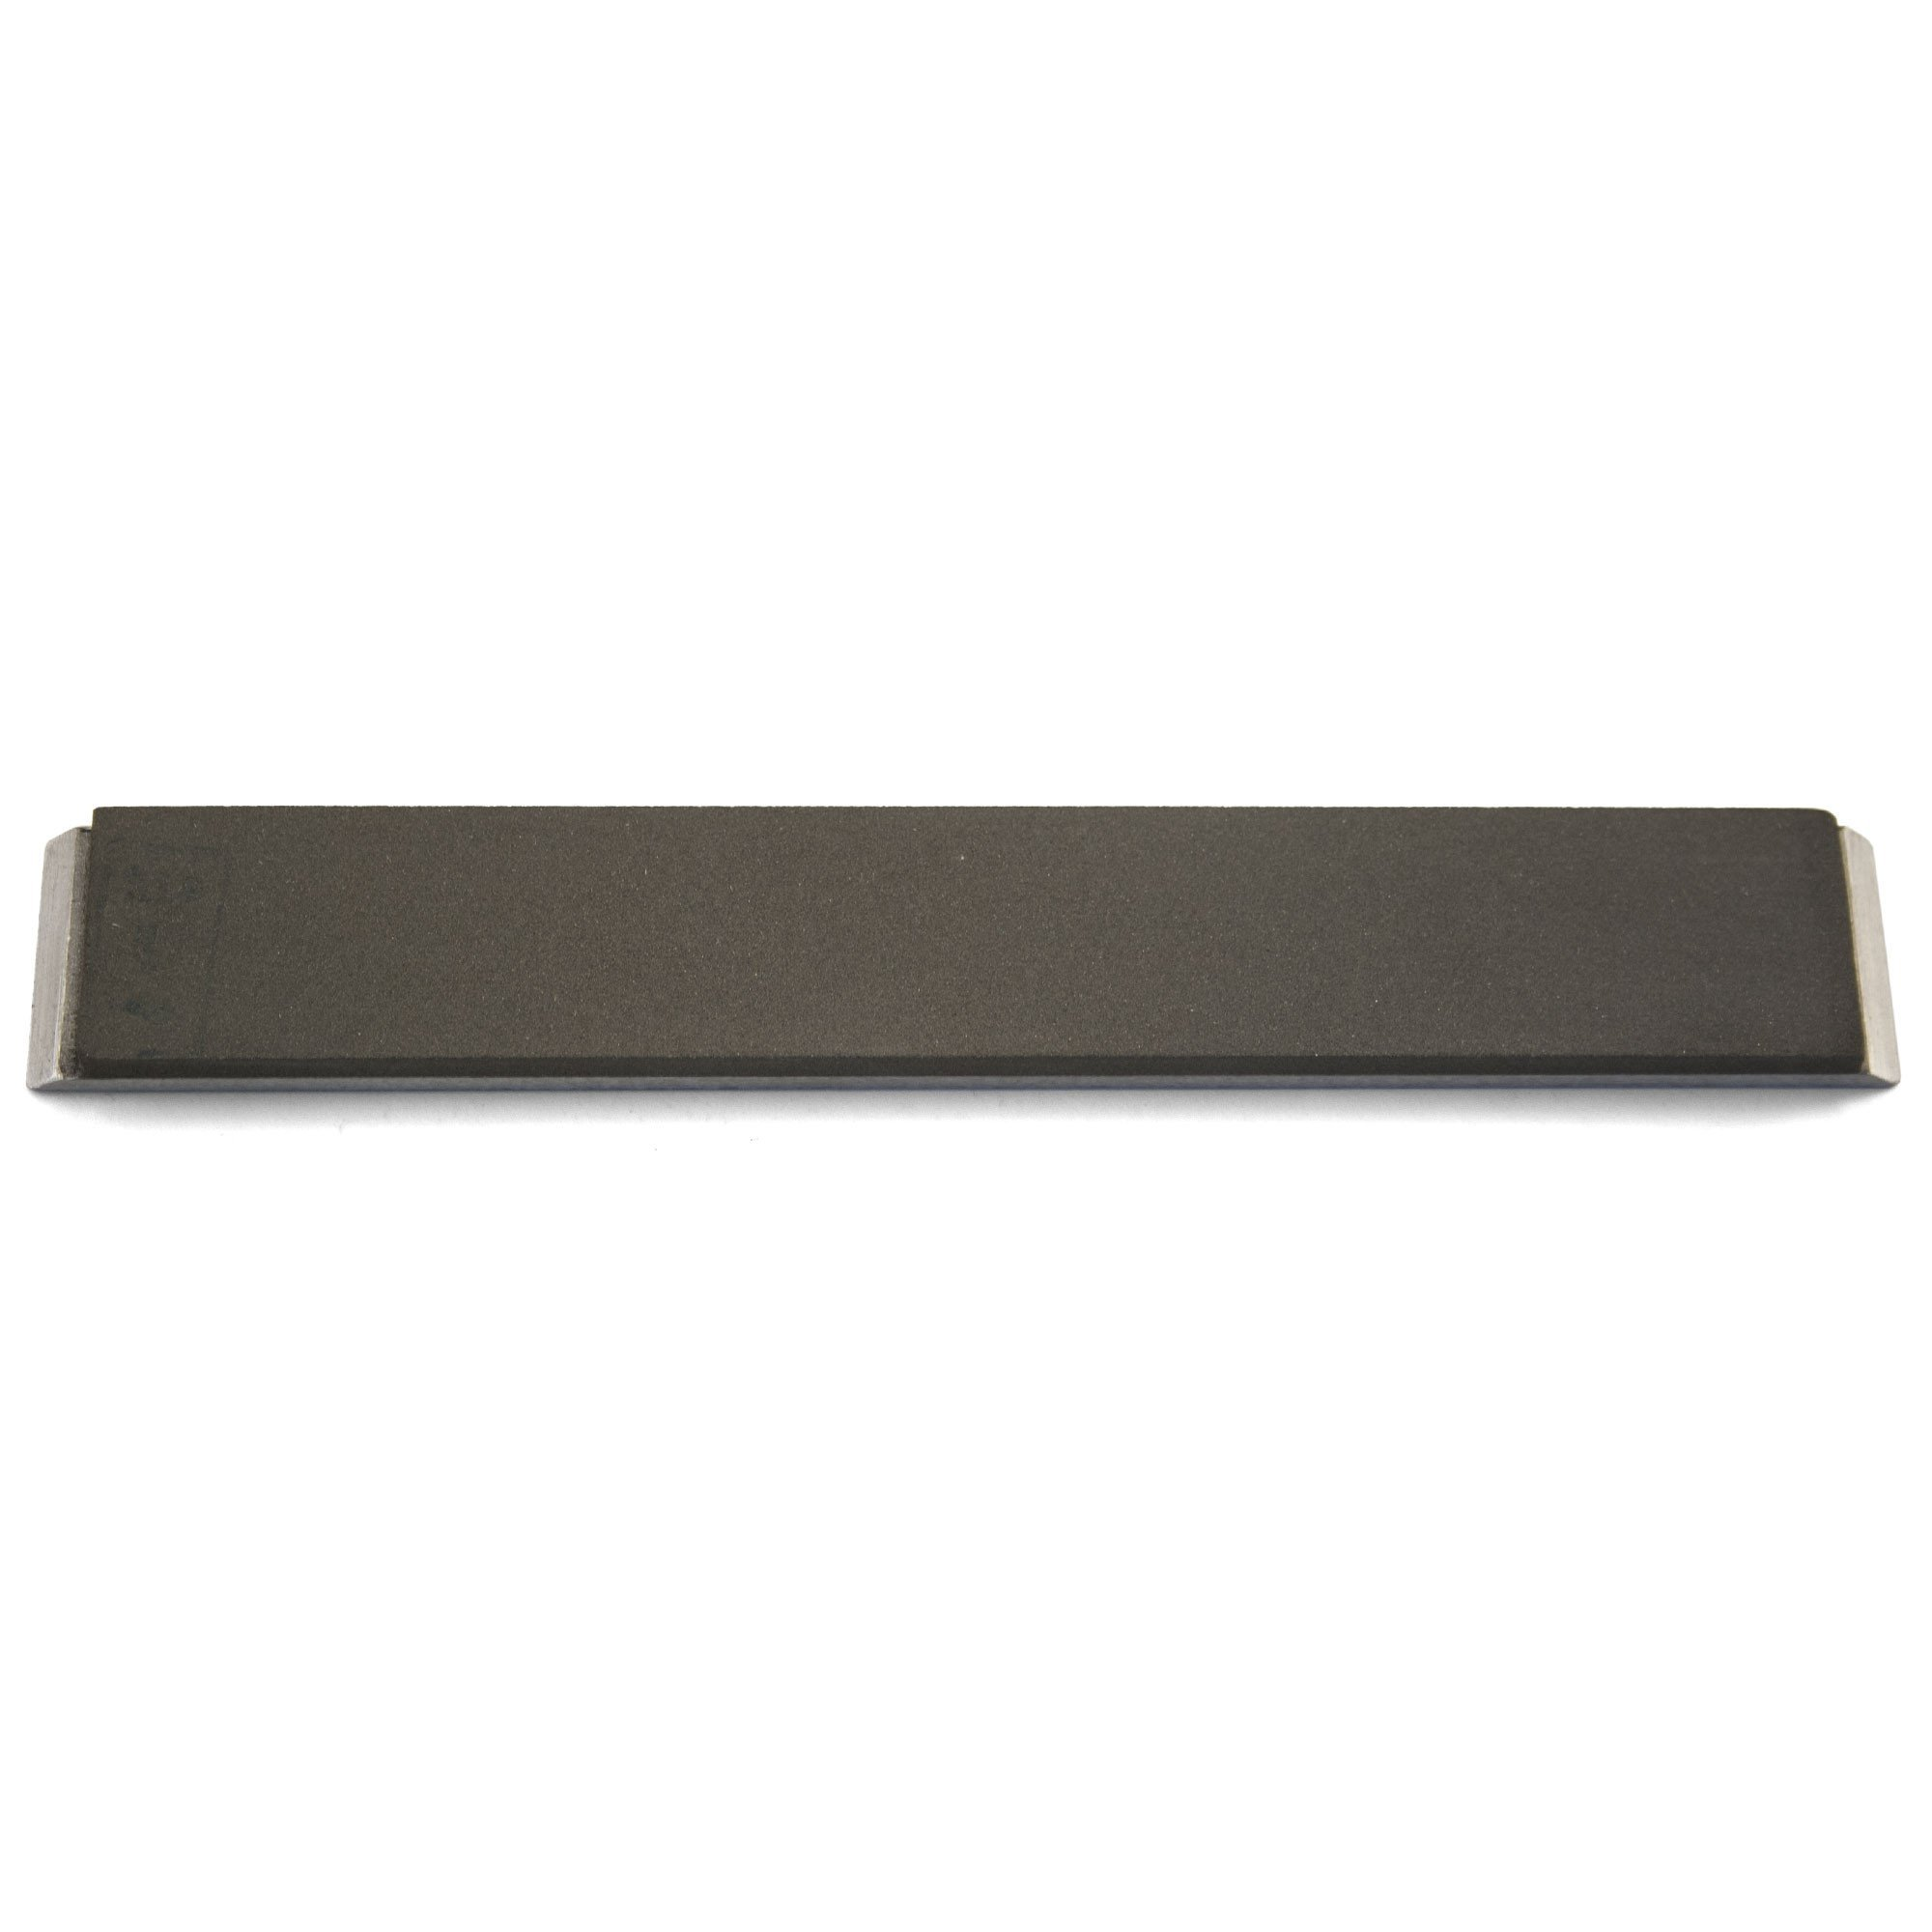 Venev Bonded Diamond 6'' x 1'' x 0.125'' Sharpening Stone with Aluminum Mounting for Edge Pro 240 grit